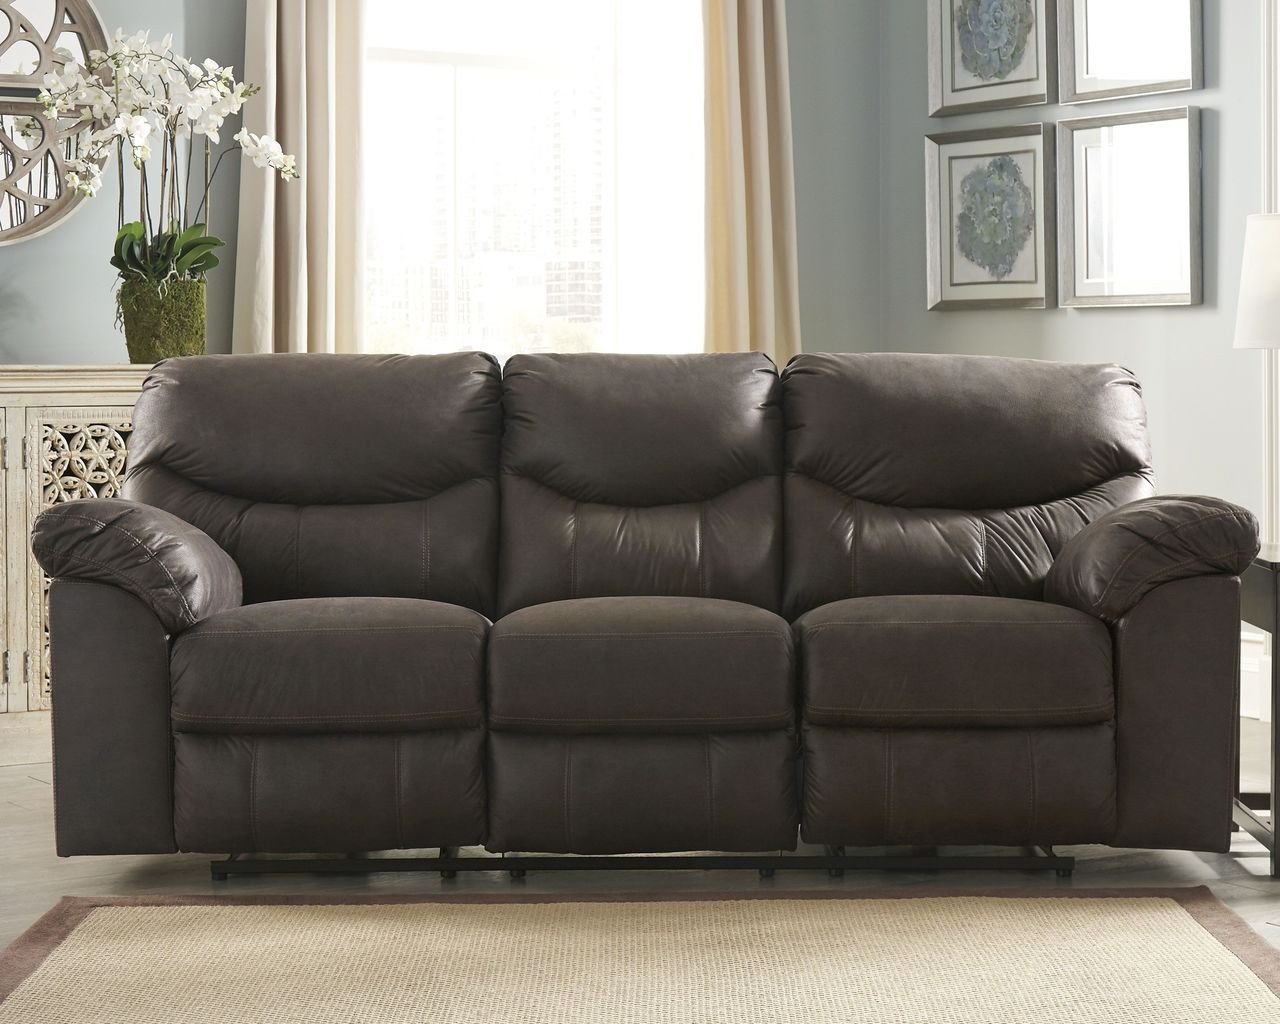 The Boxberg Teak Reclining Sofa Available At Royal Star Furniture